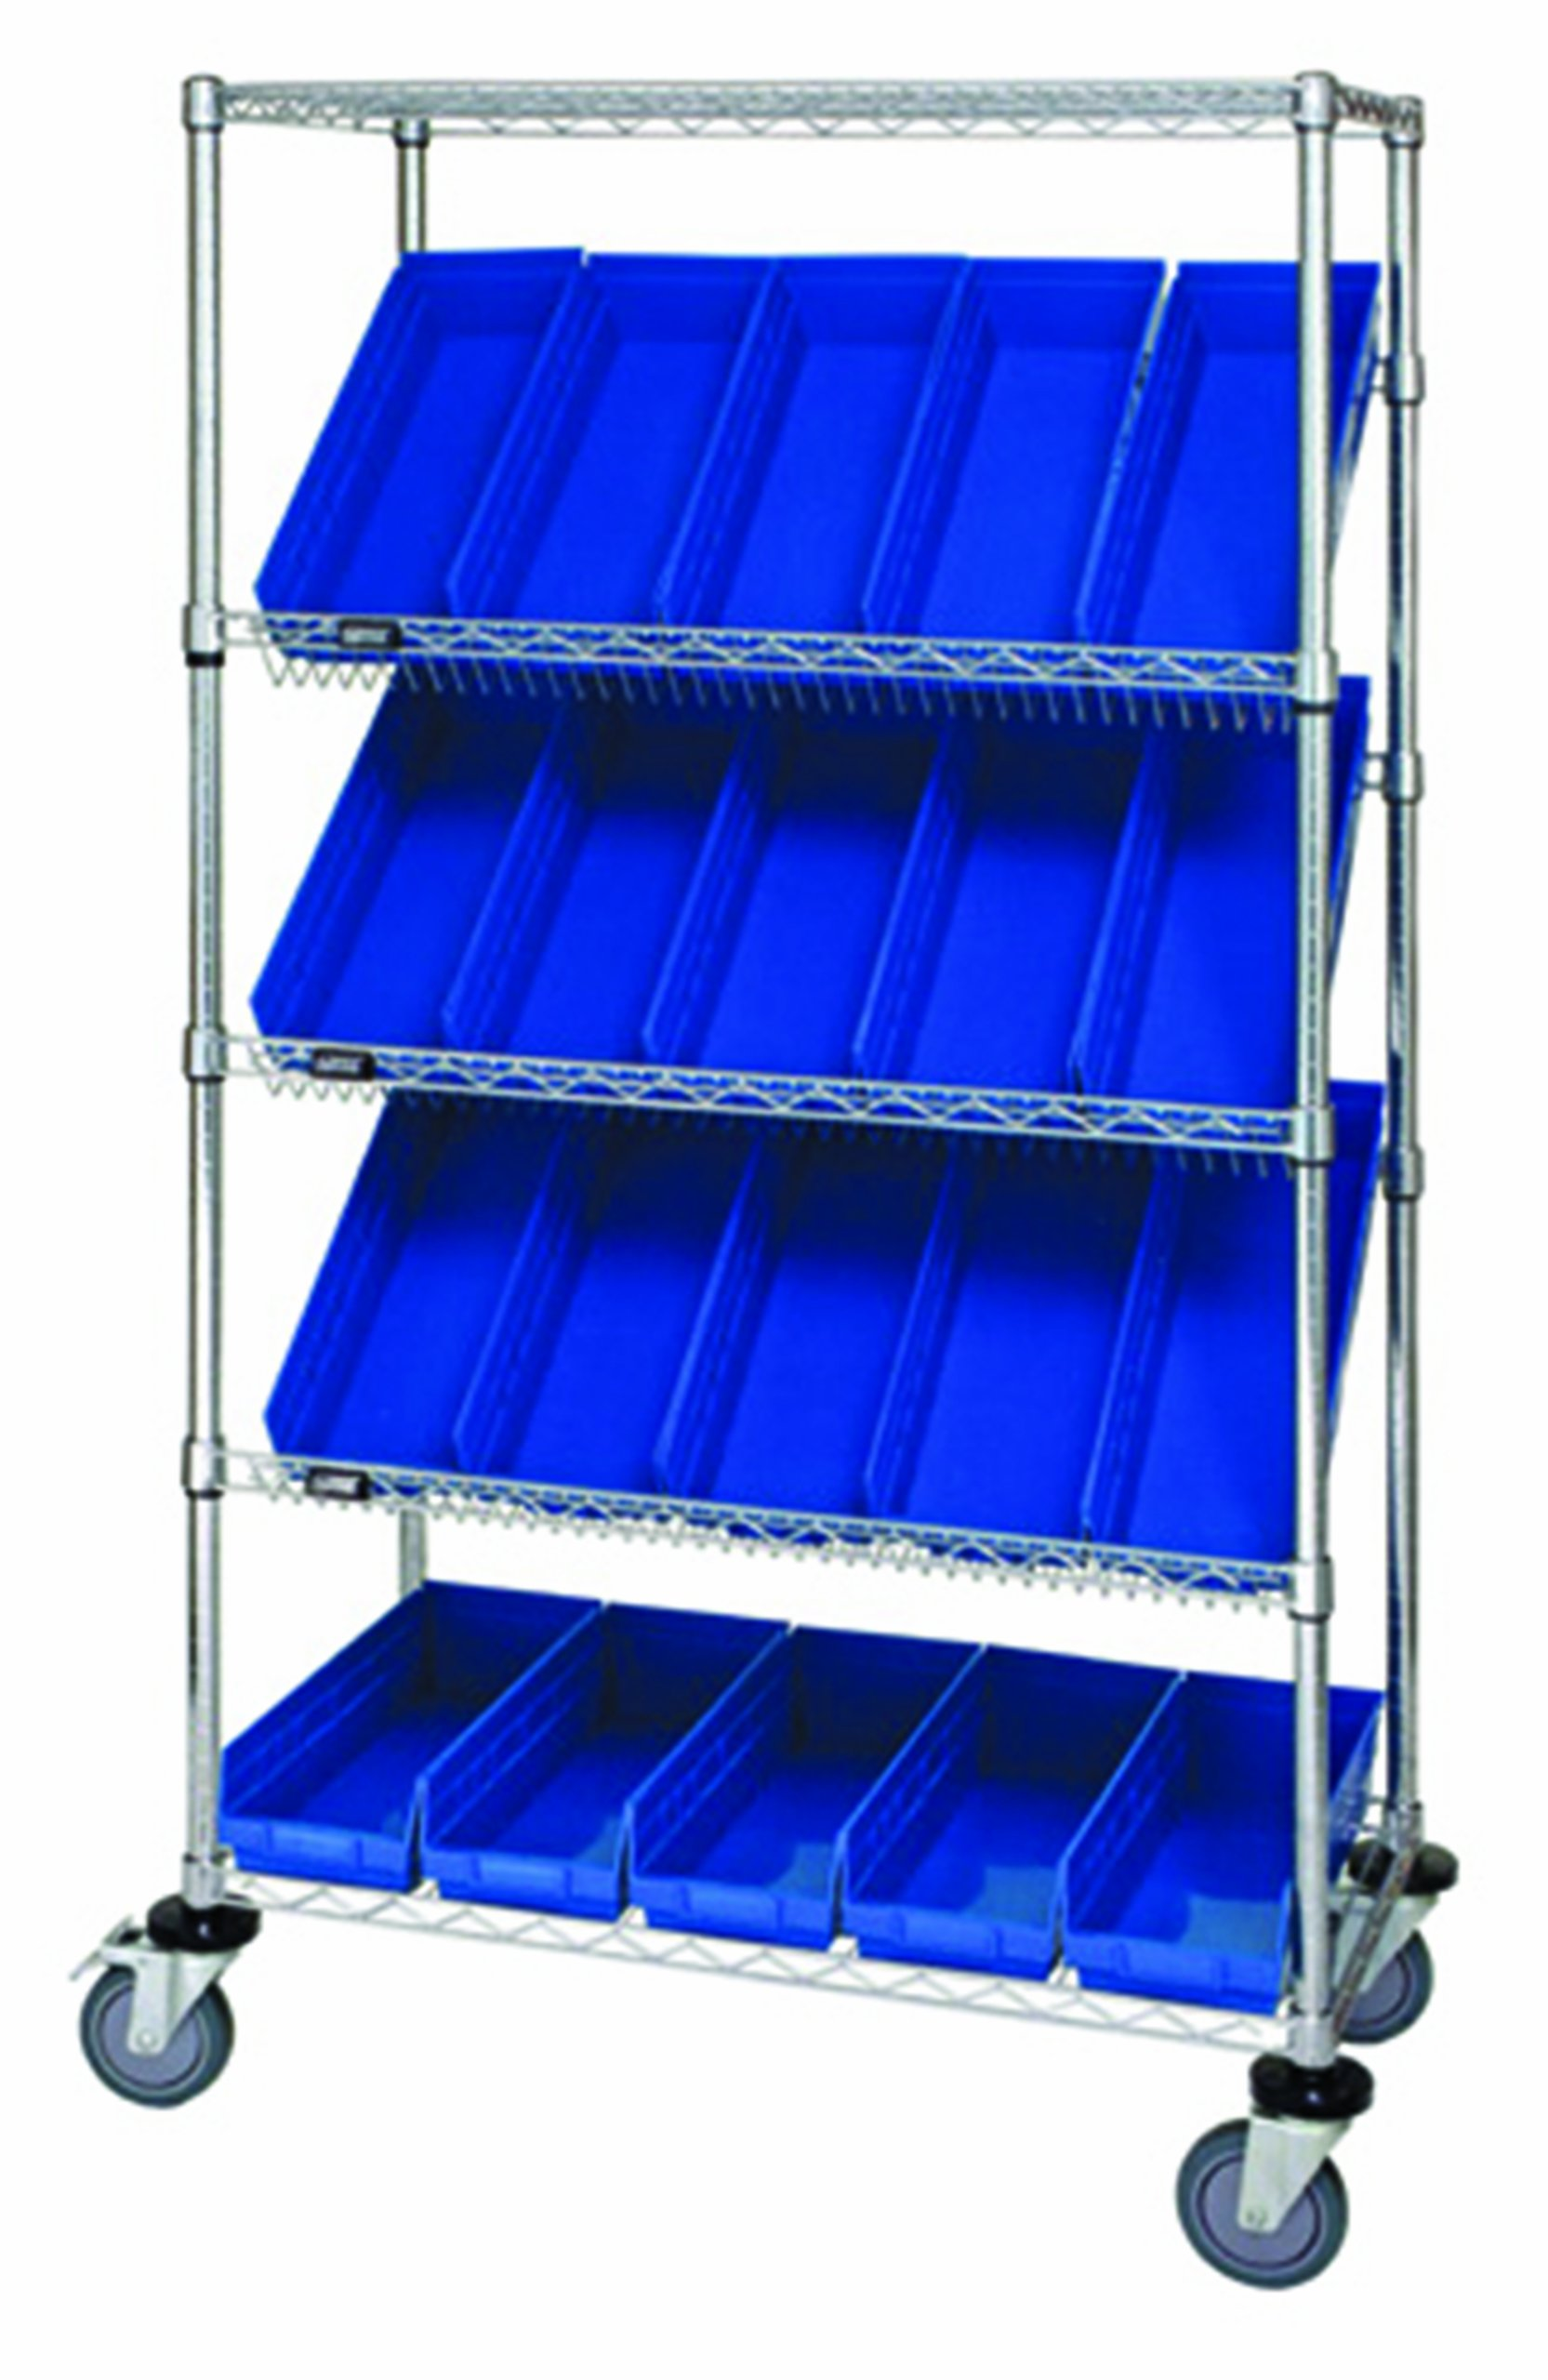 Quantum Storage Systems WRCSL5-63-1836-104BL 5-Tier Slanted Wire Shelving Suture Cart with 20 QSB104 Blue Economy Shelf Bins, 2 Horizontal and 3 Slanted Shelves, Chrome Finish, 69'' Height x 36'' Width x 18'' Depth